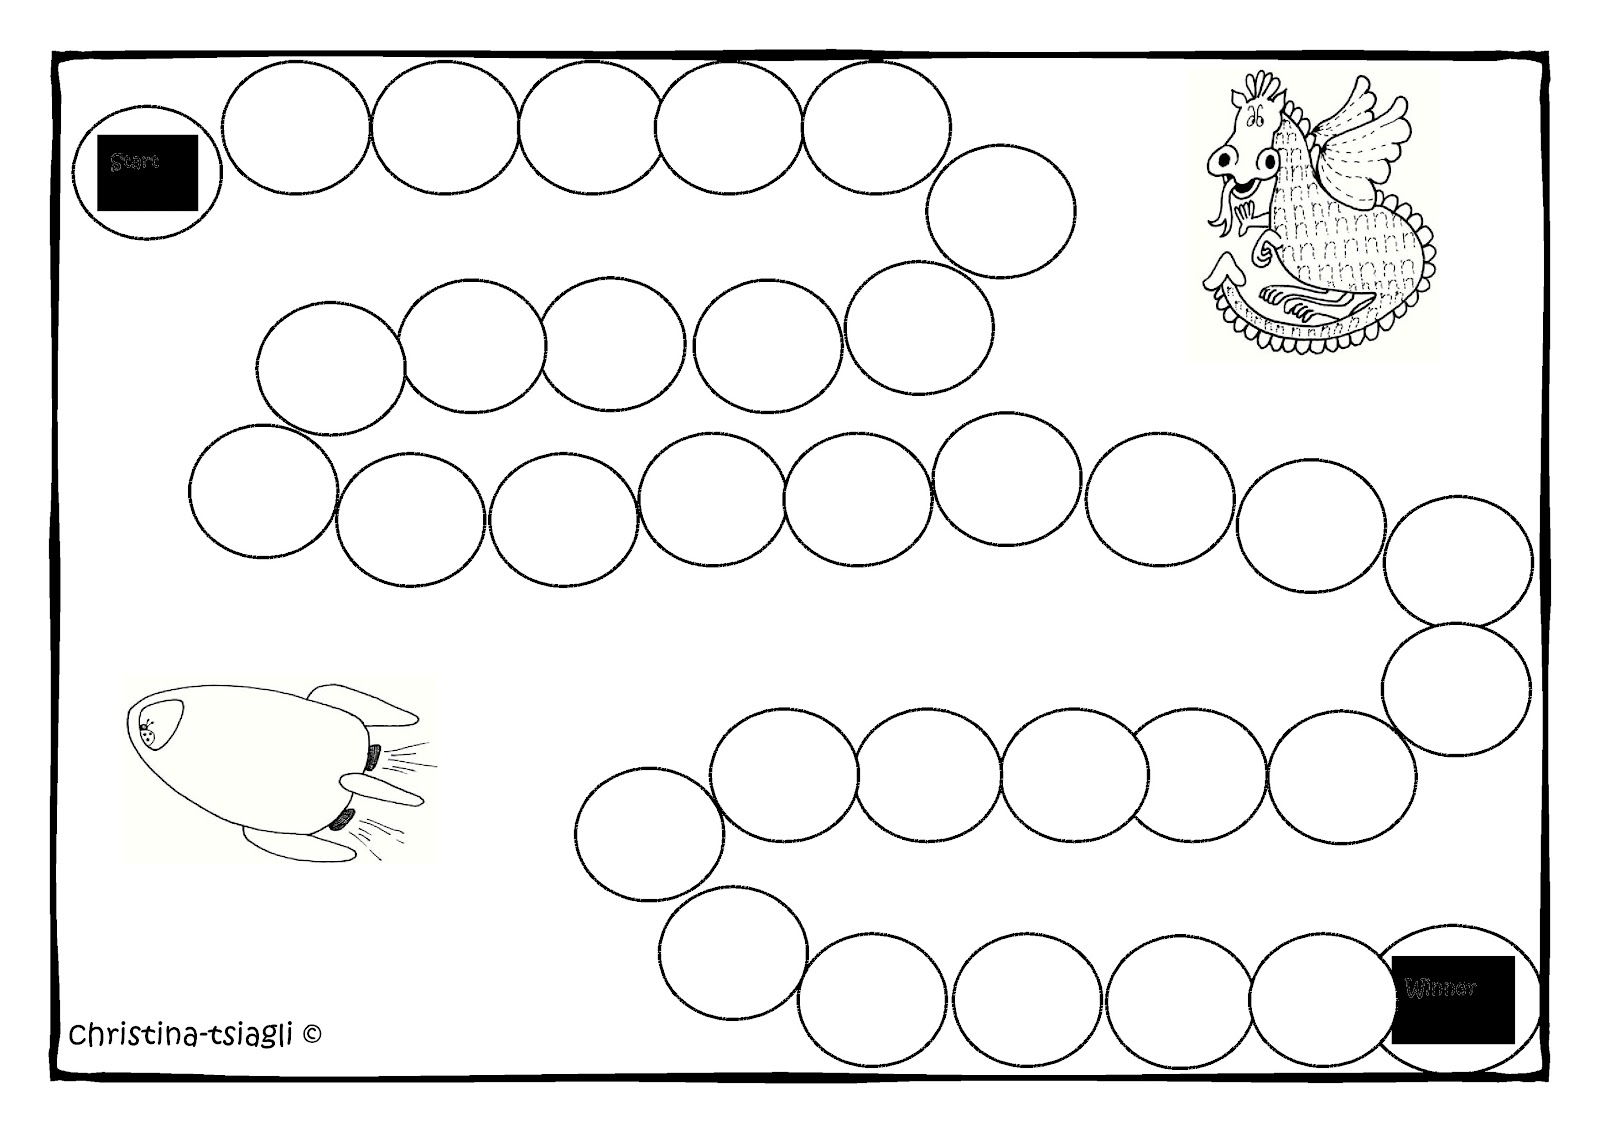 Good game board template pictures creating revision board games teachers printable board download gameboard blank game board template maxwellsz